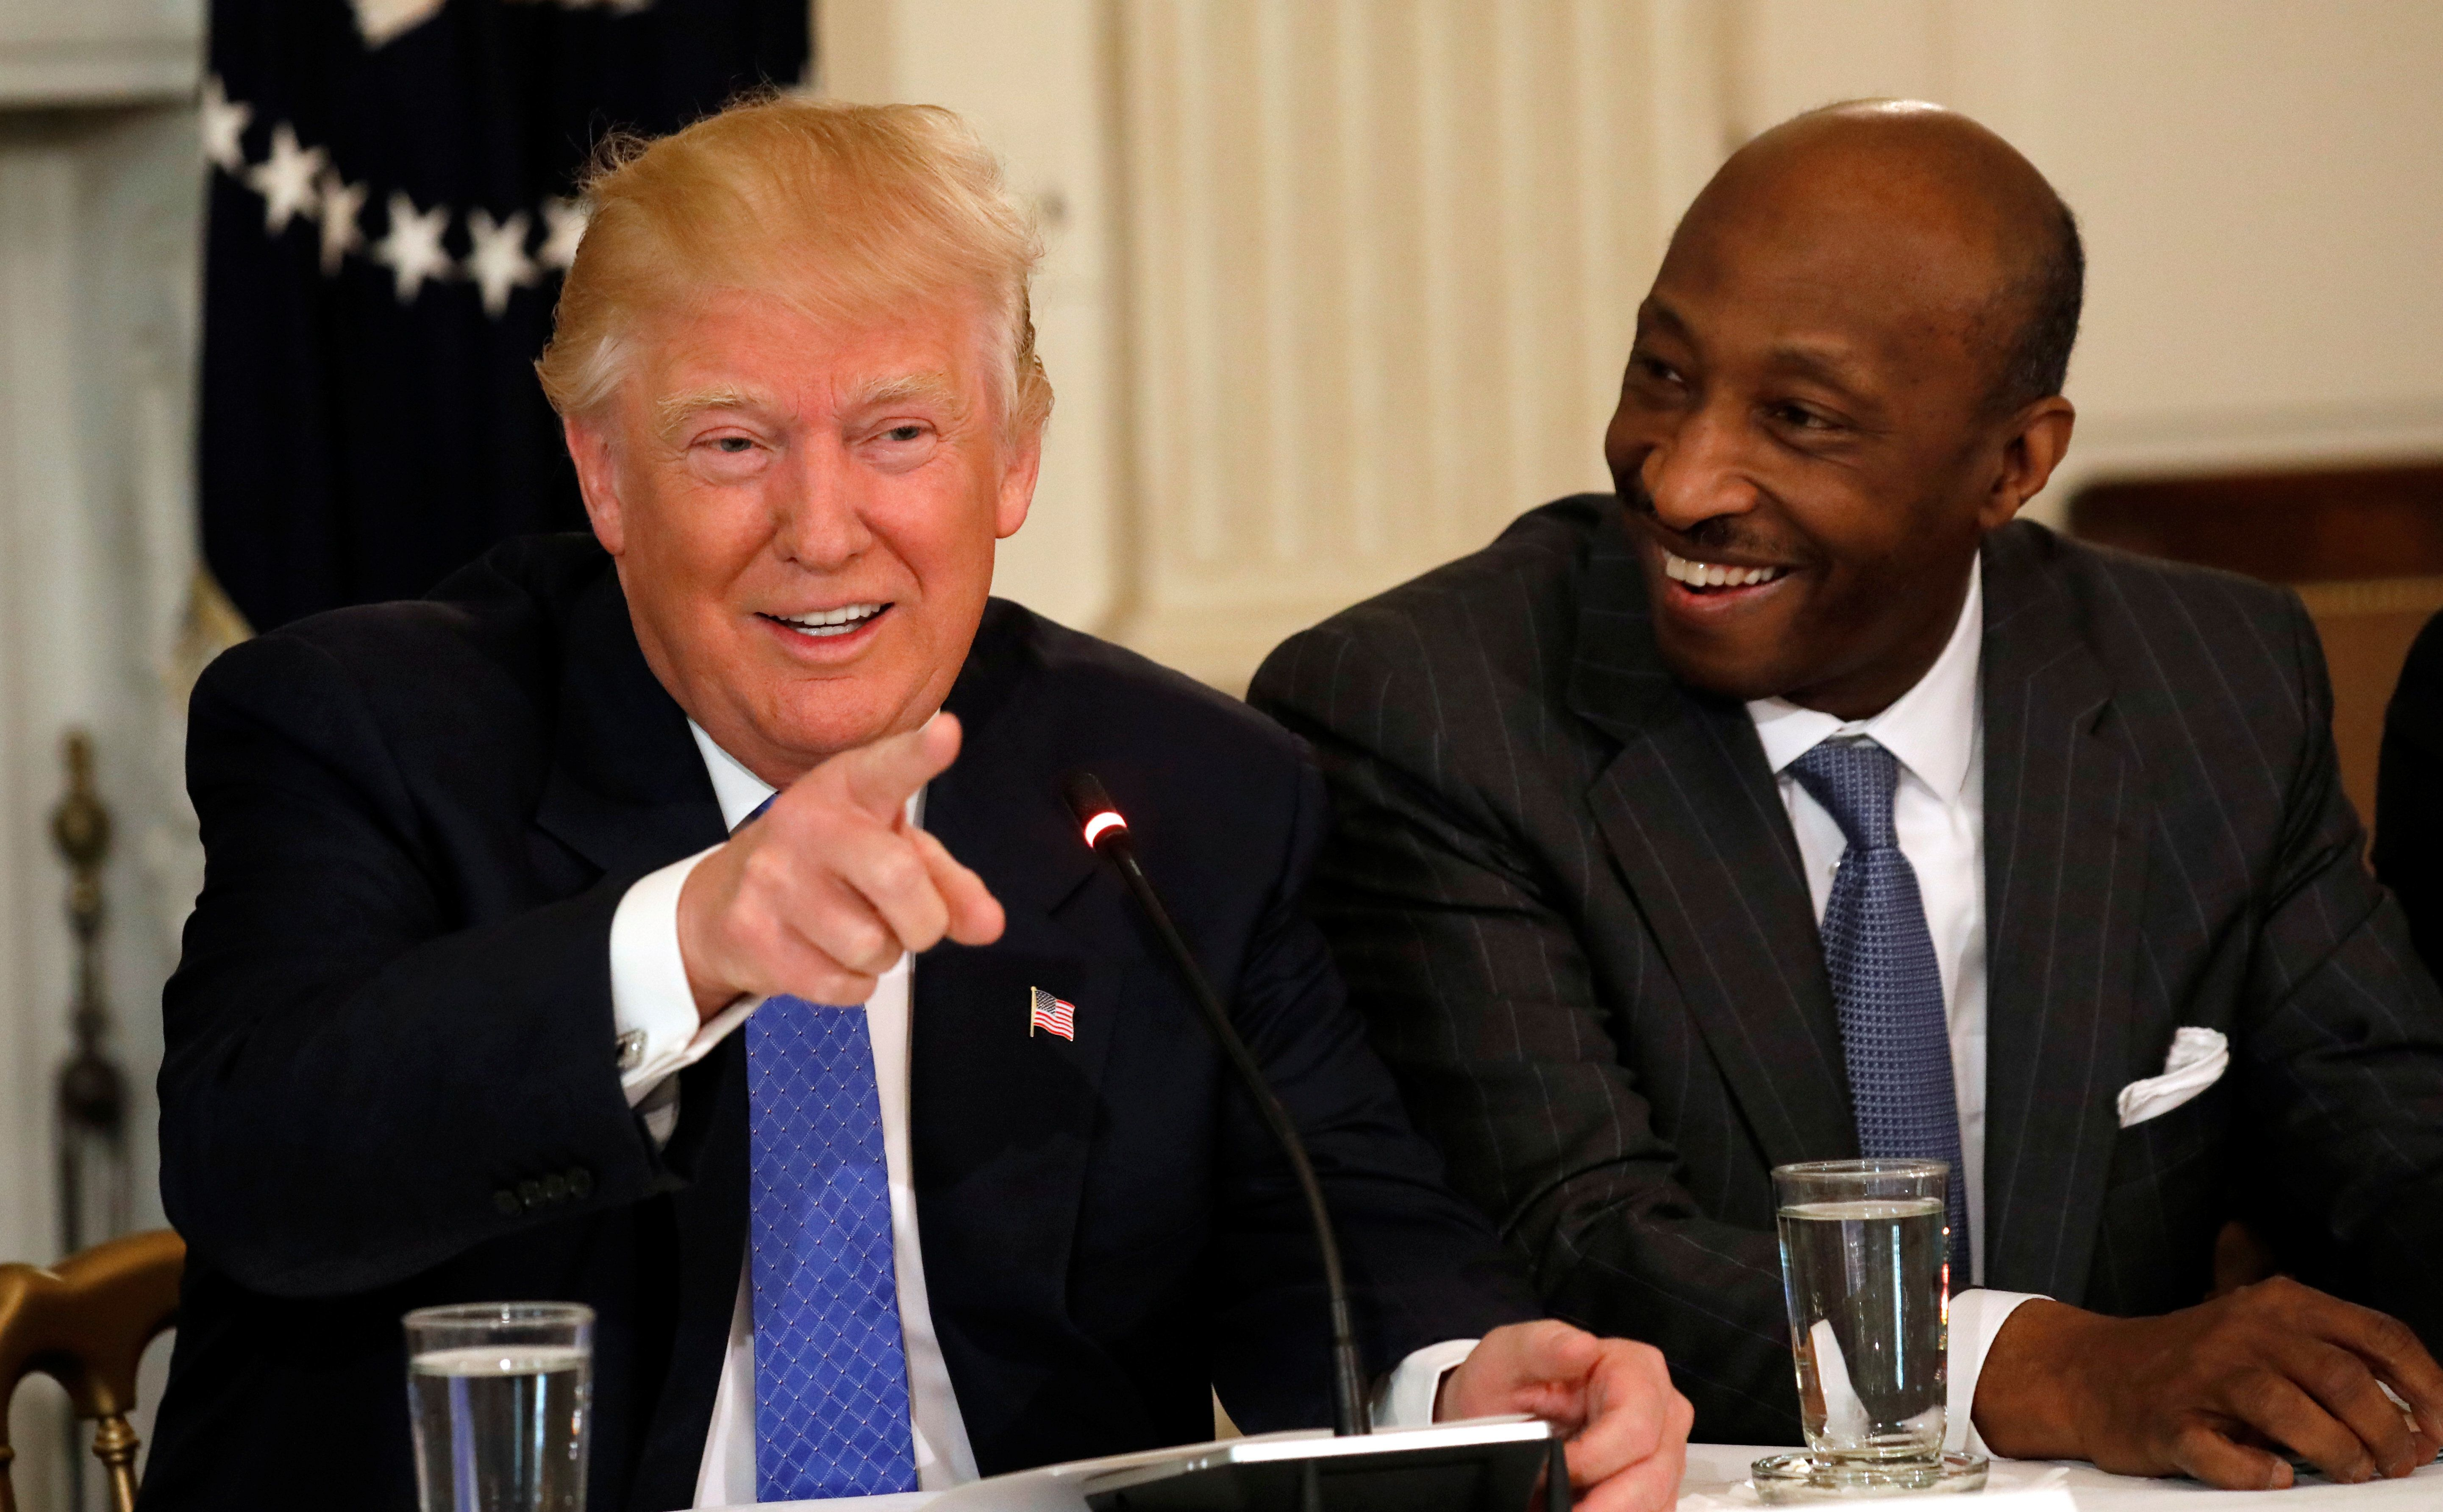 Merck & Co. CEO Ken Frazier (R) listens to U.S. President Donald Trump speak during a meeting with manufacturing CEOs at the White House in Washington, DC, U.S. February 23, 2017. REUTERS/Kevin Lamarque